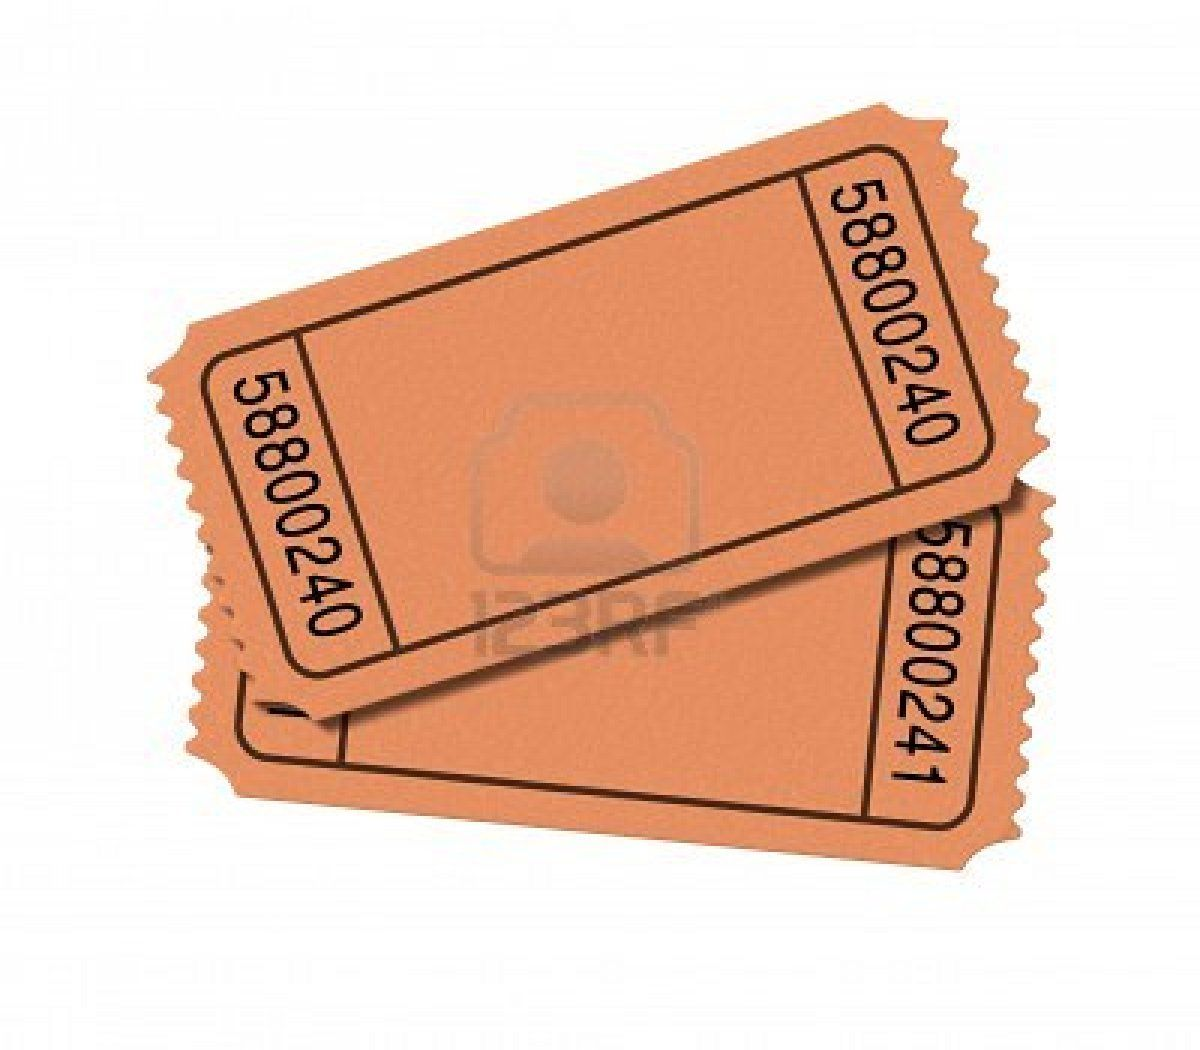 Blank Ticket Template To Make Out Theater Ticket Vouchers For A